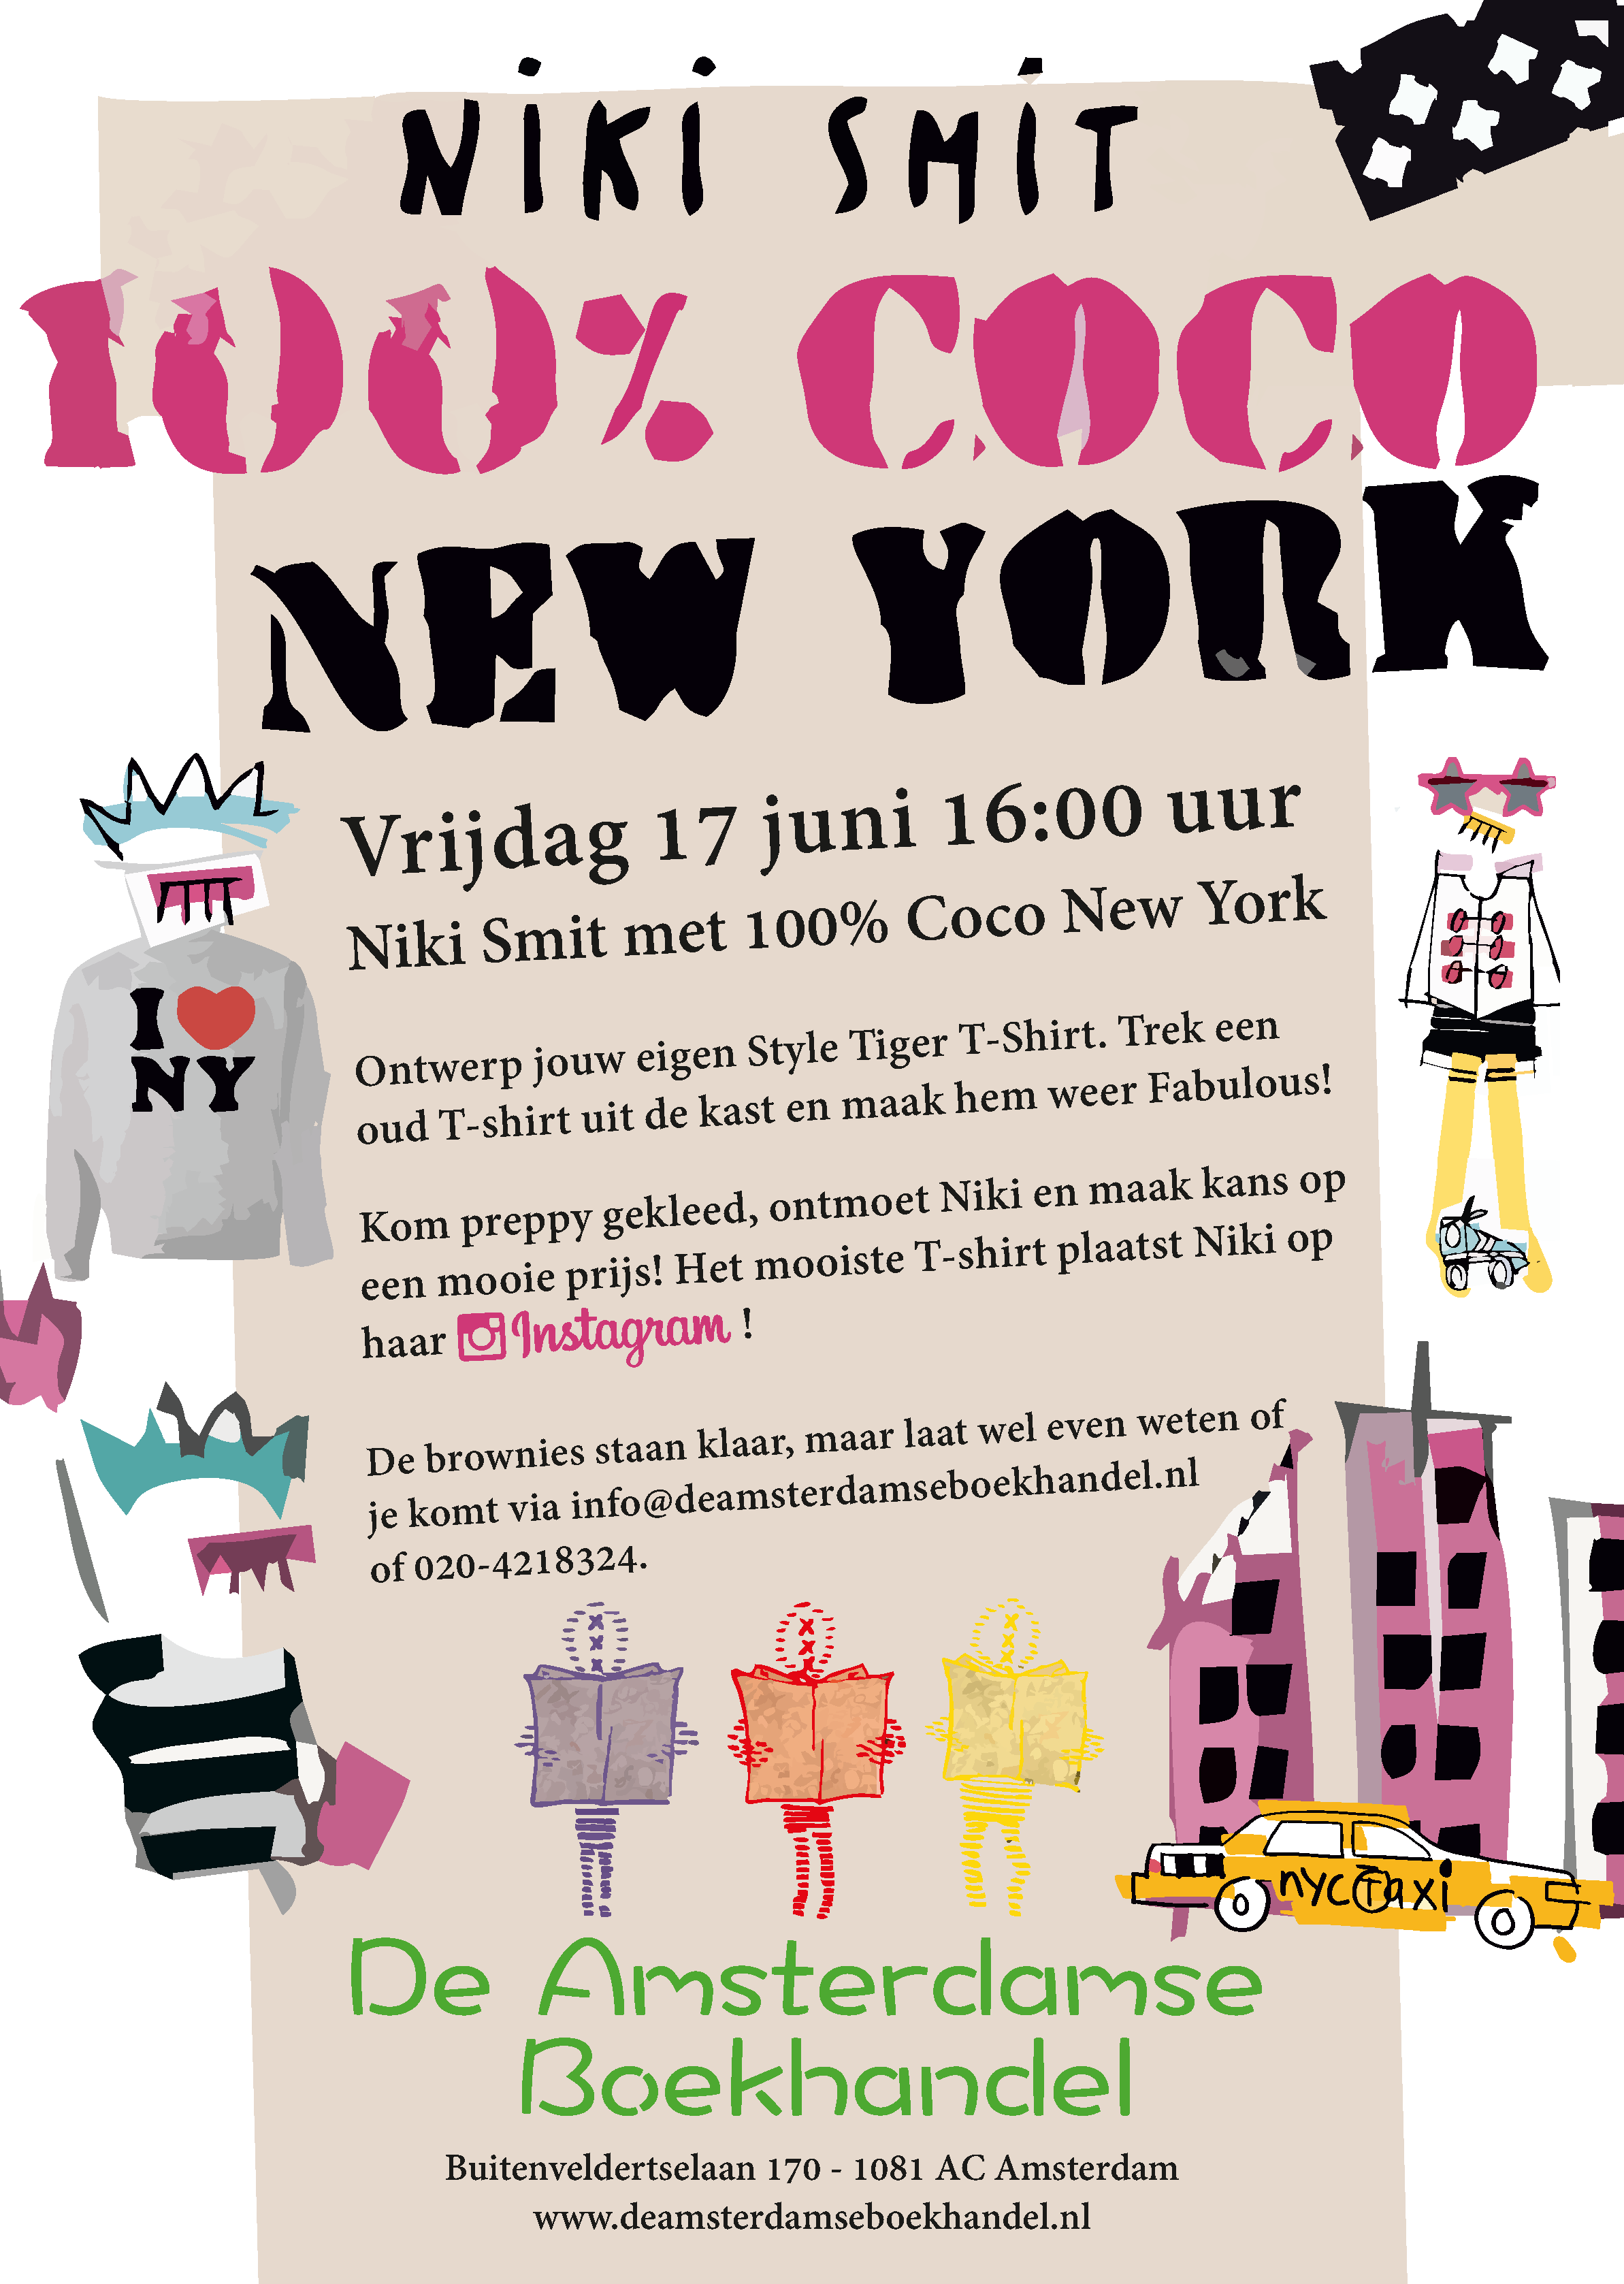 Niki Smit met 100% Coco New York